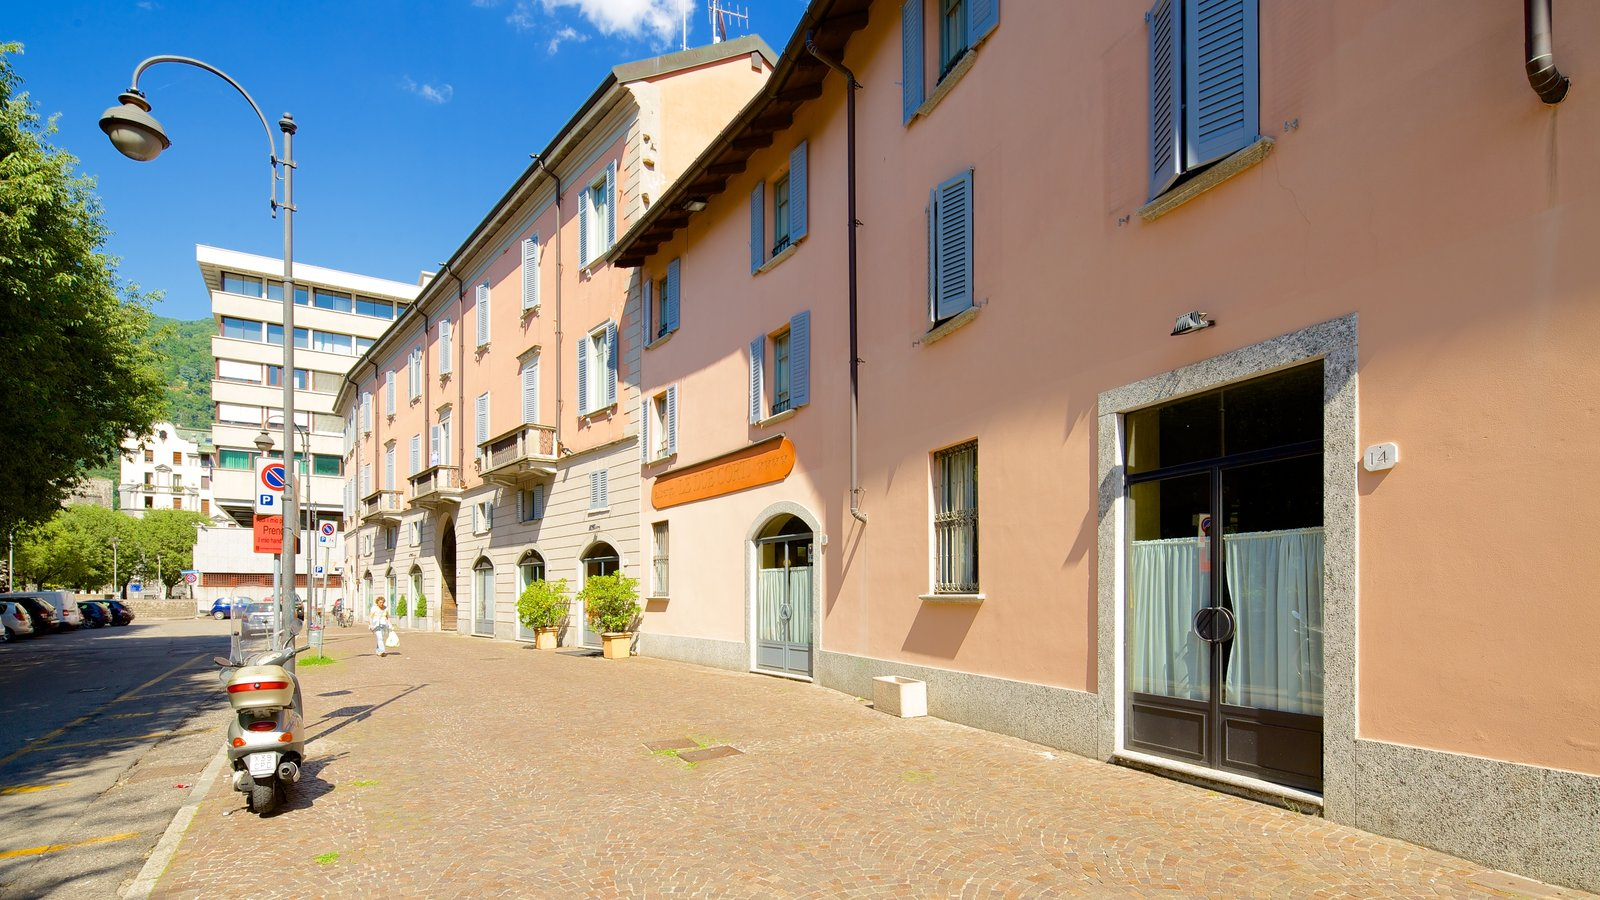 Piazza Vittoria which includes heritage architecture and a small town or village